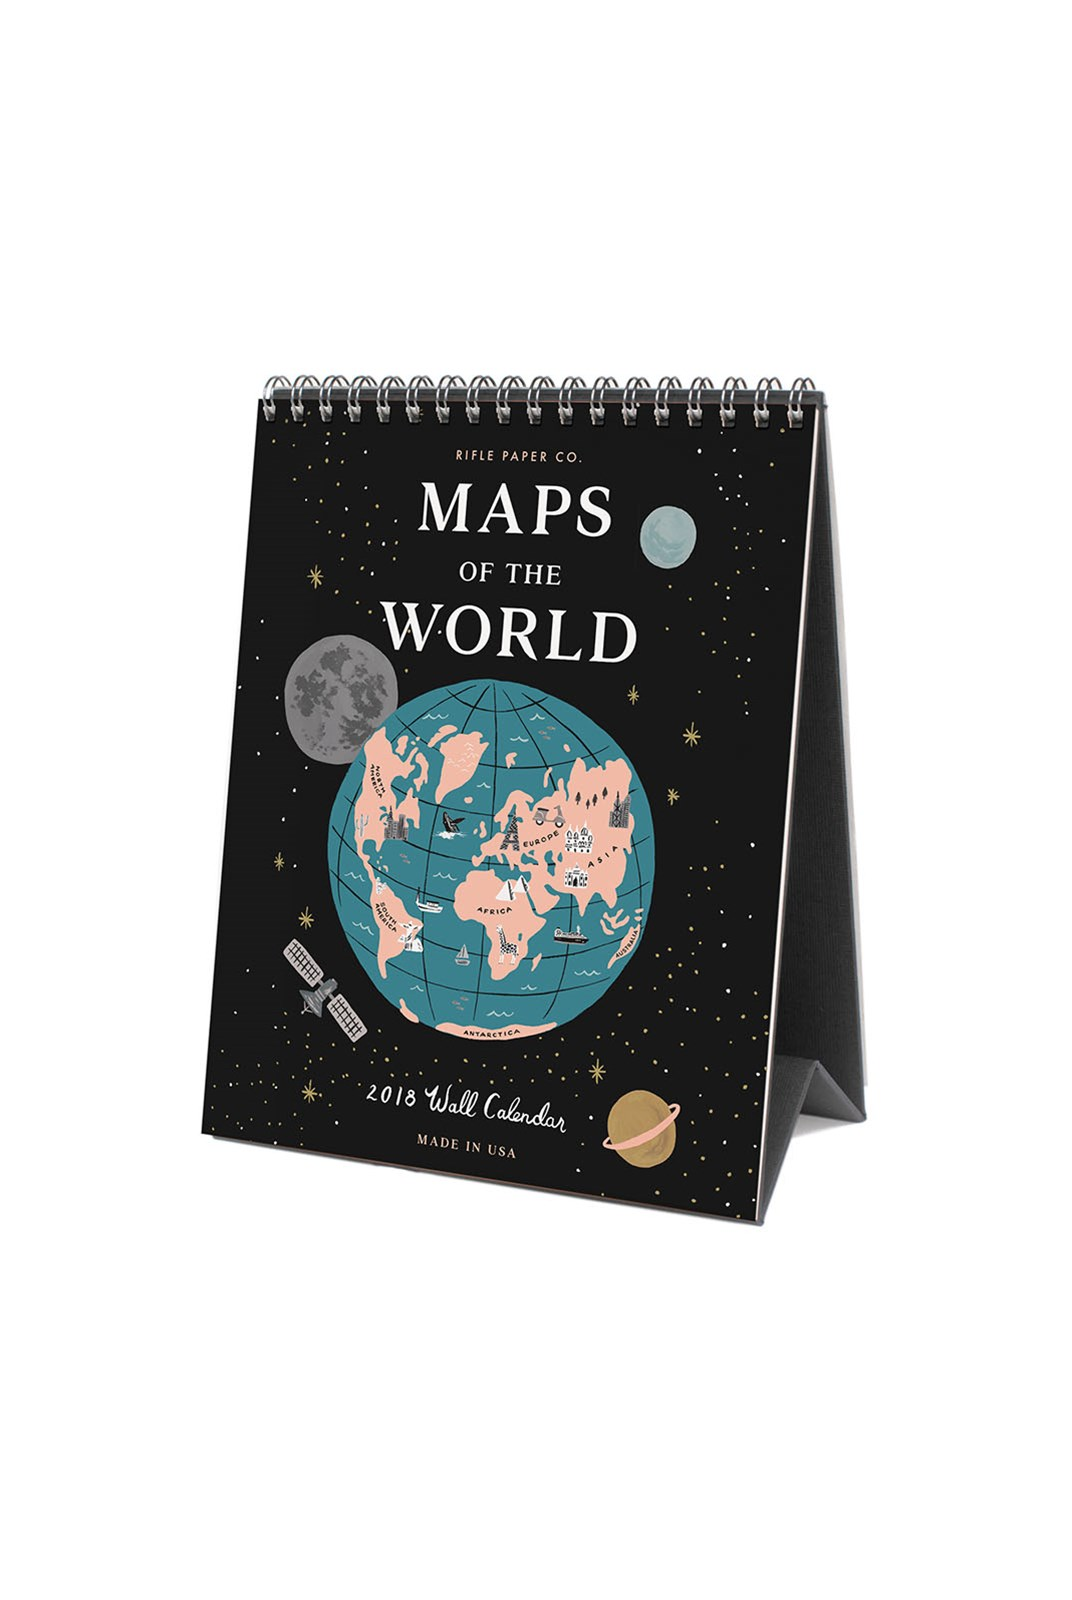 Rifle Paper Co - 2019 Desk Calendar - Maps of the World